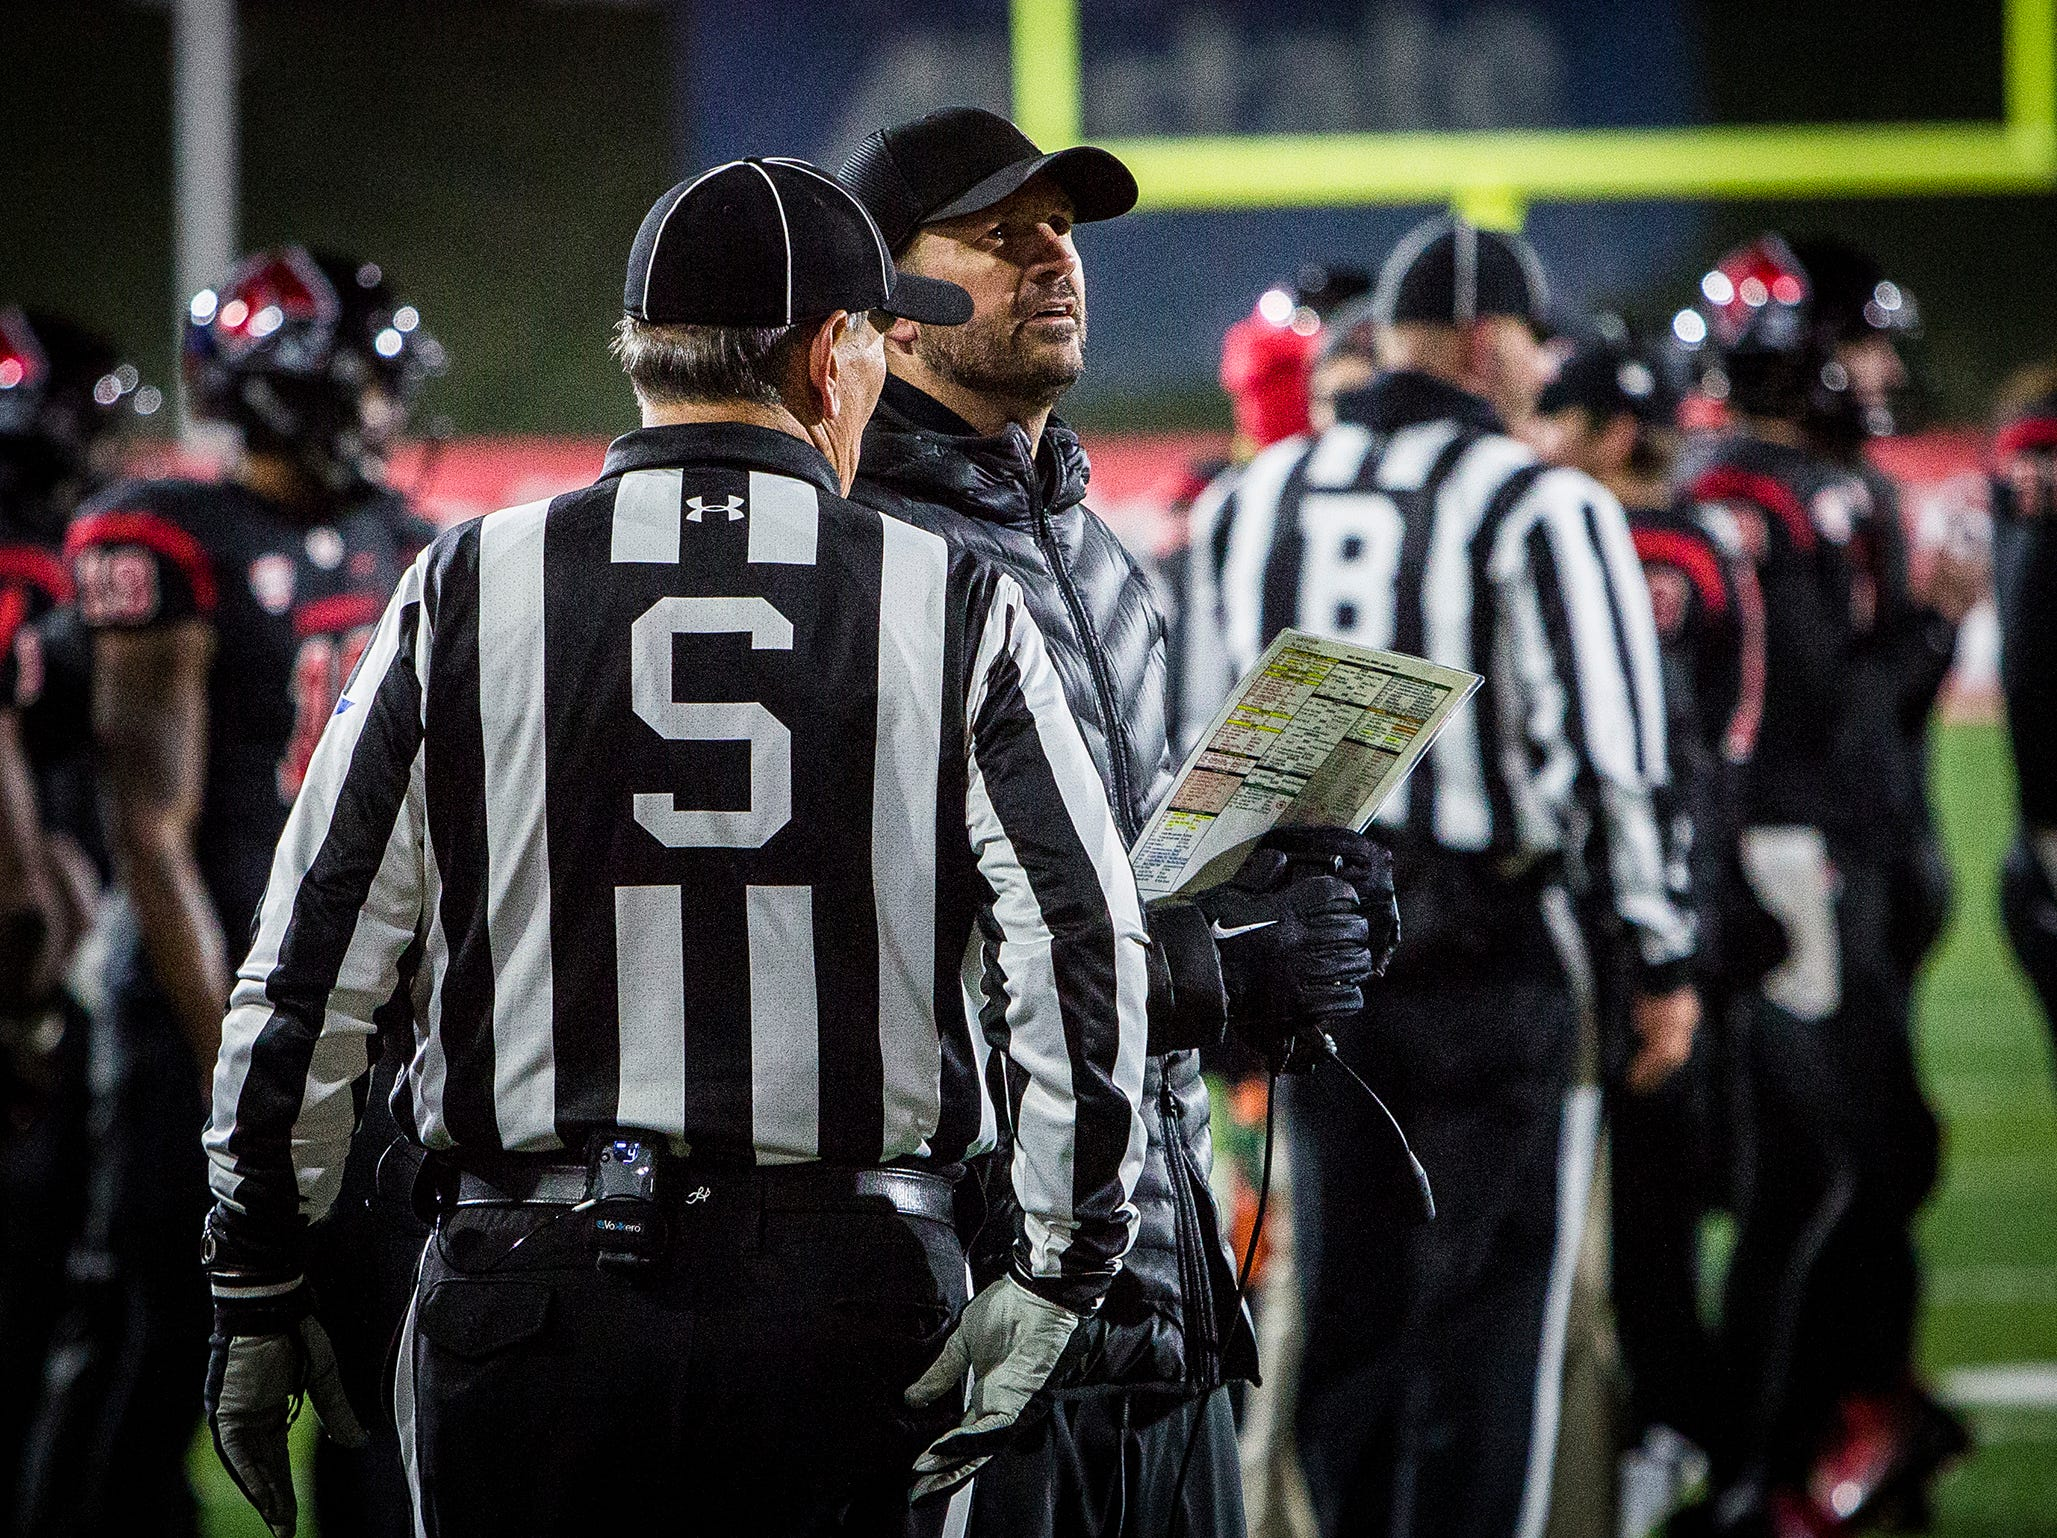 Ball State's Mike Neu talks to a ref during the game against Western Michigan during their game at Scheumann Stadium Tuesday, Nov. 13, 2018.